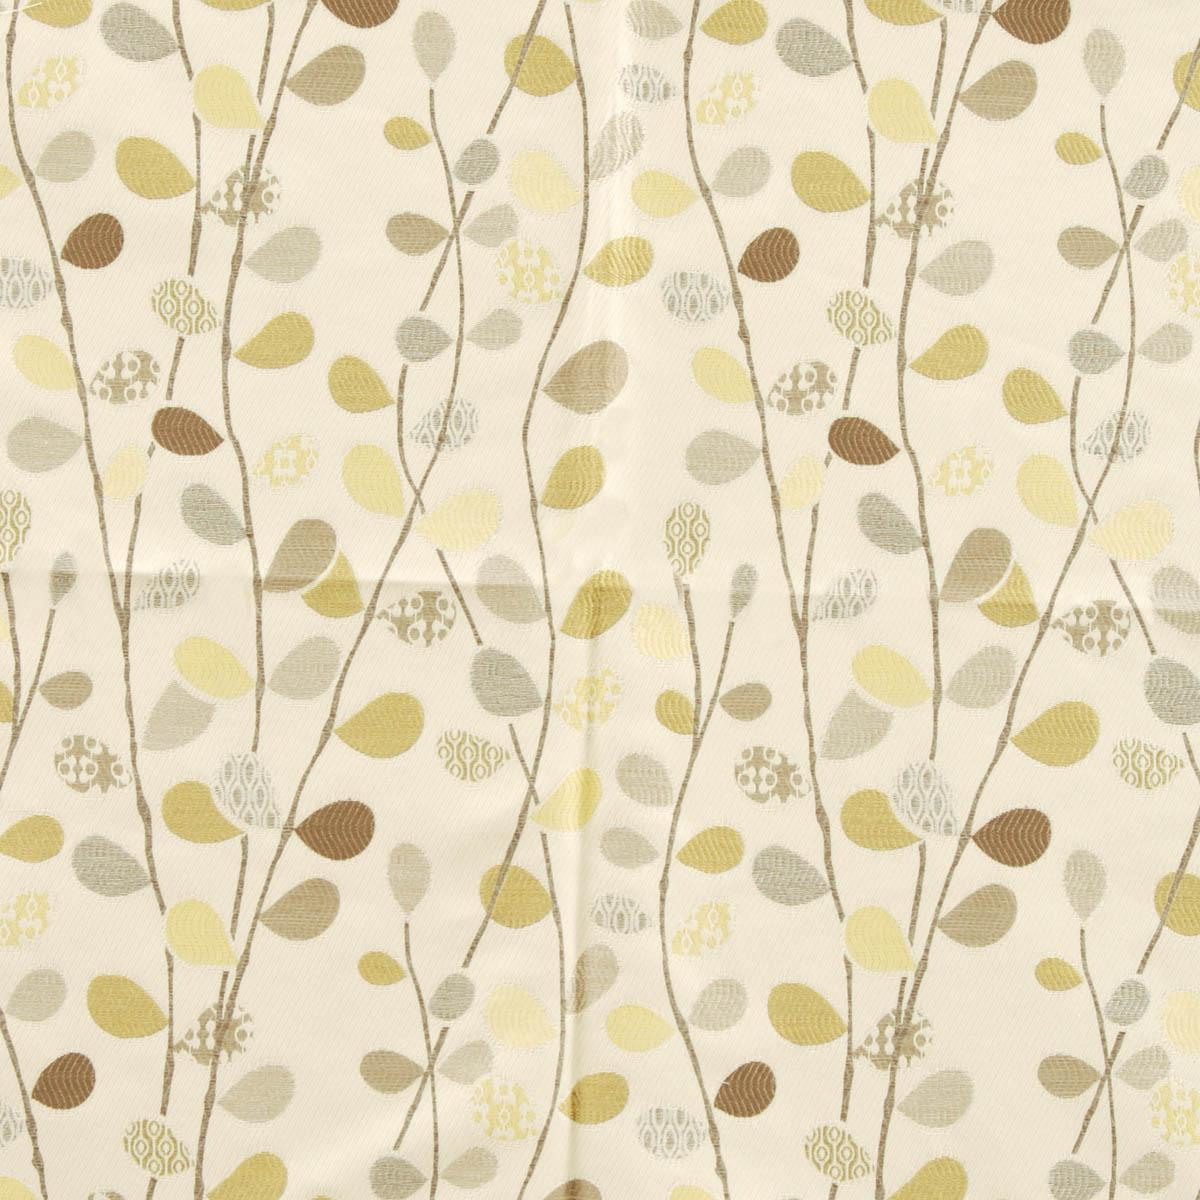 Curtain Fabric Honesty Curtain Fabric In Zest Free Uk Delivery Terrys Fabrics